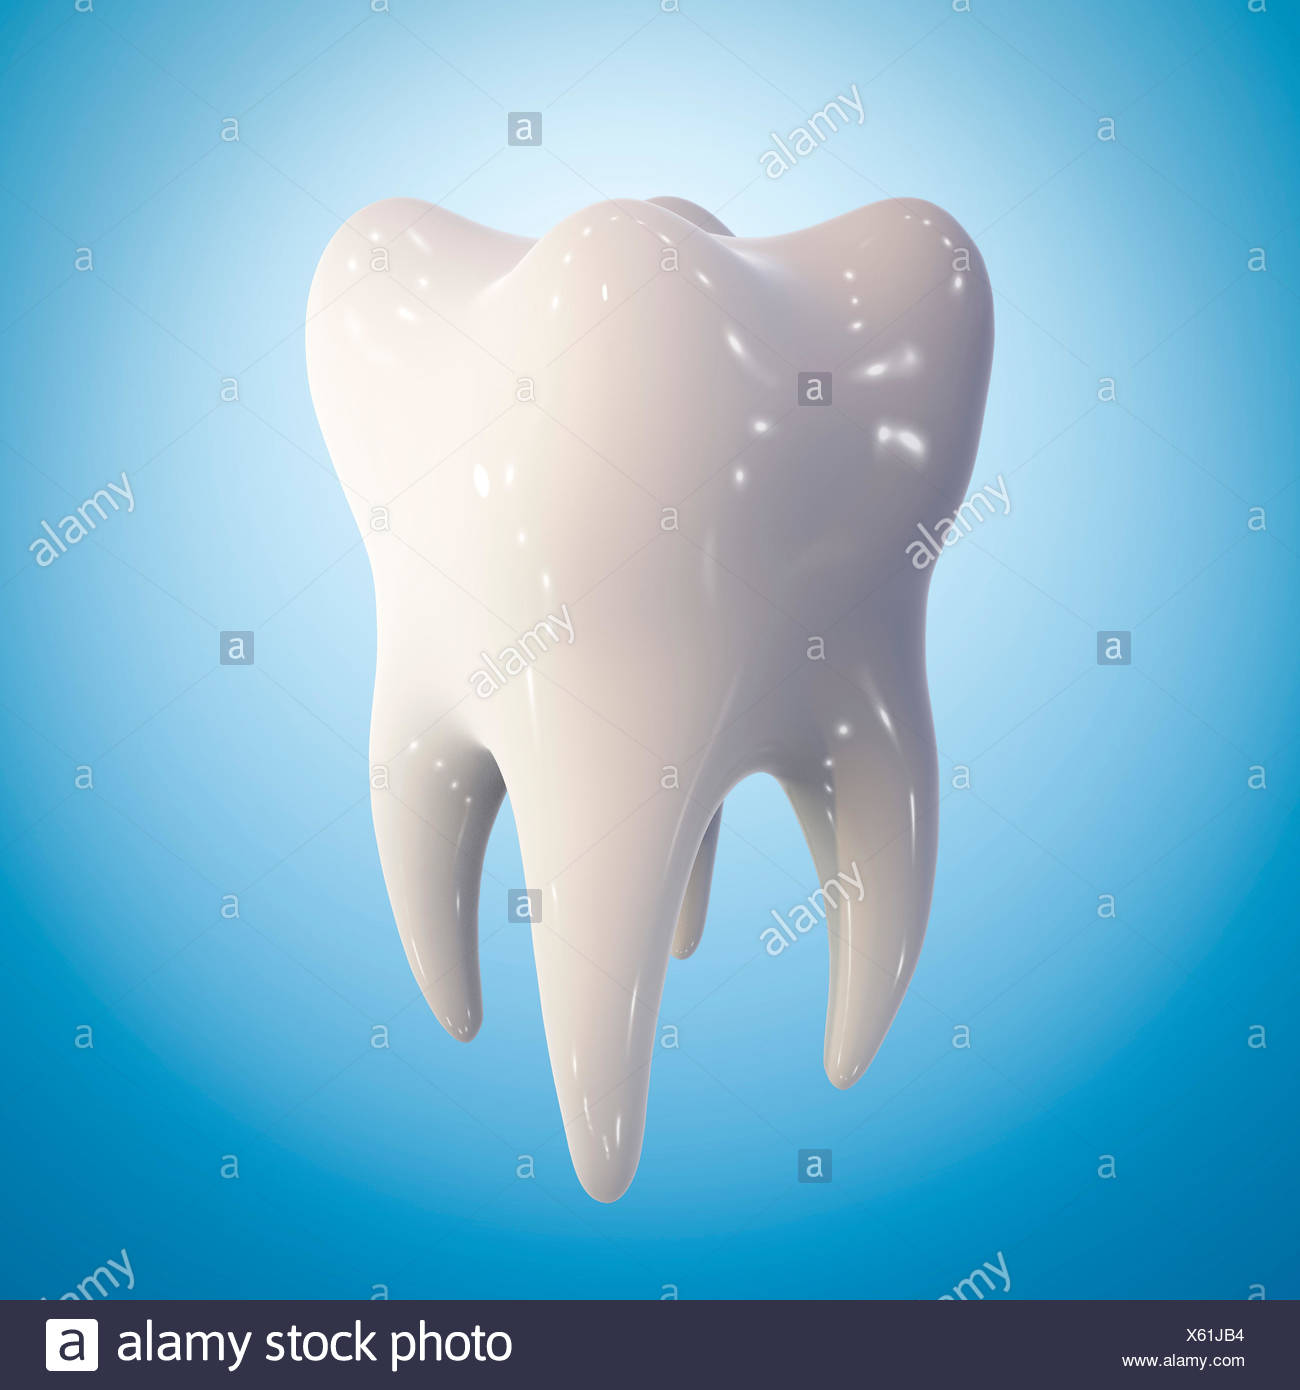 Healthy molar tooth, computer illustration. - Stock Image